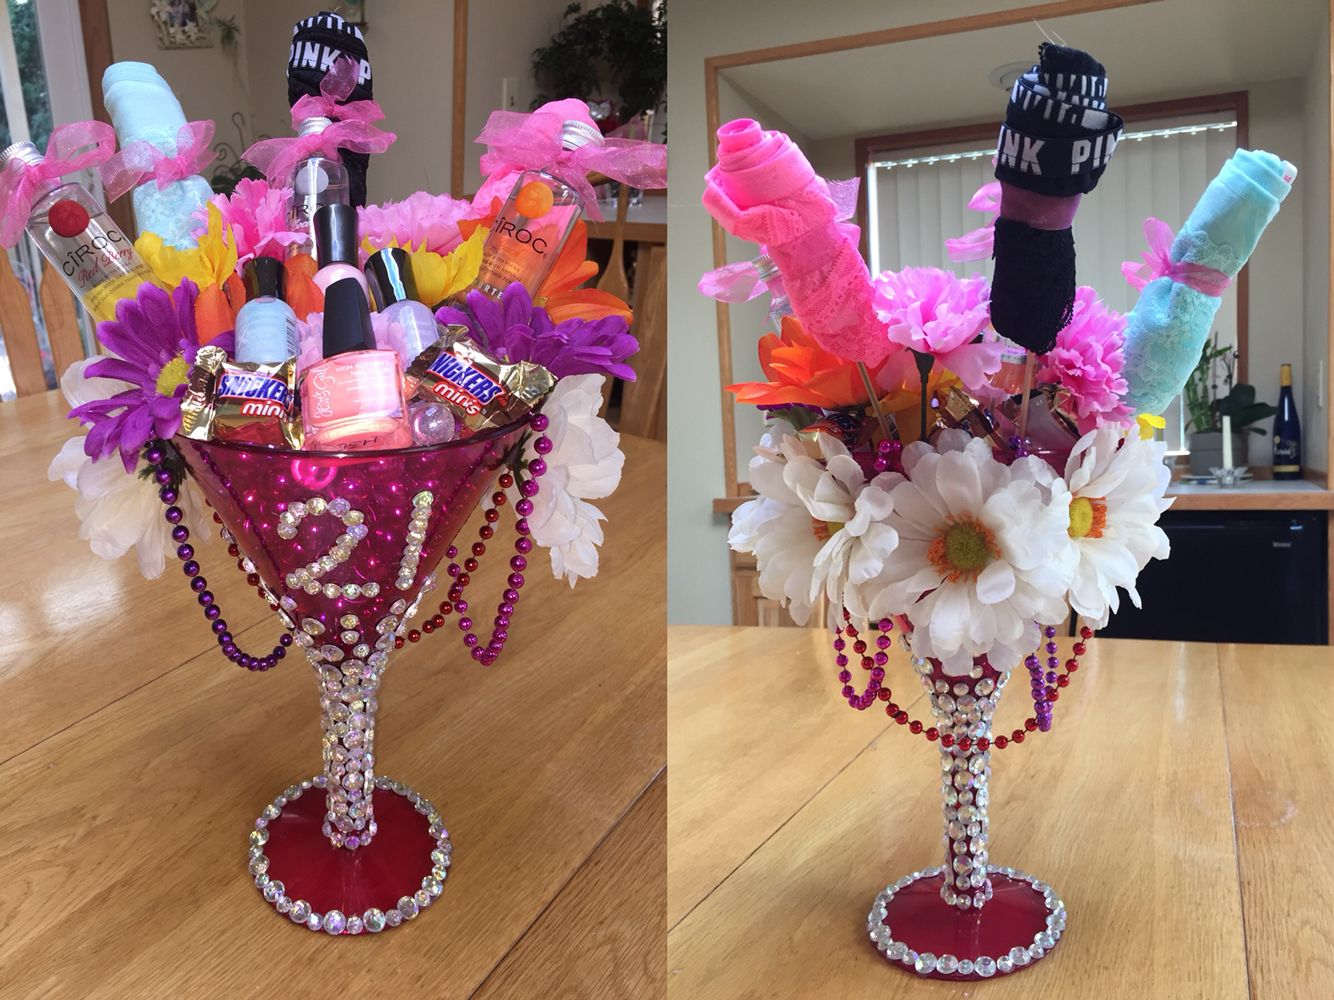 21st birthday gift idea for girls   Gifting ideas ...